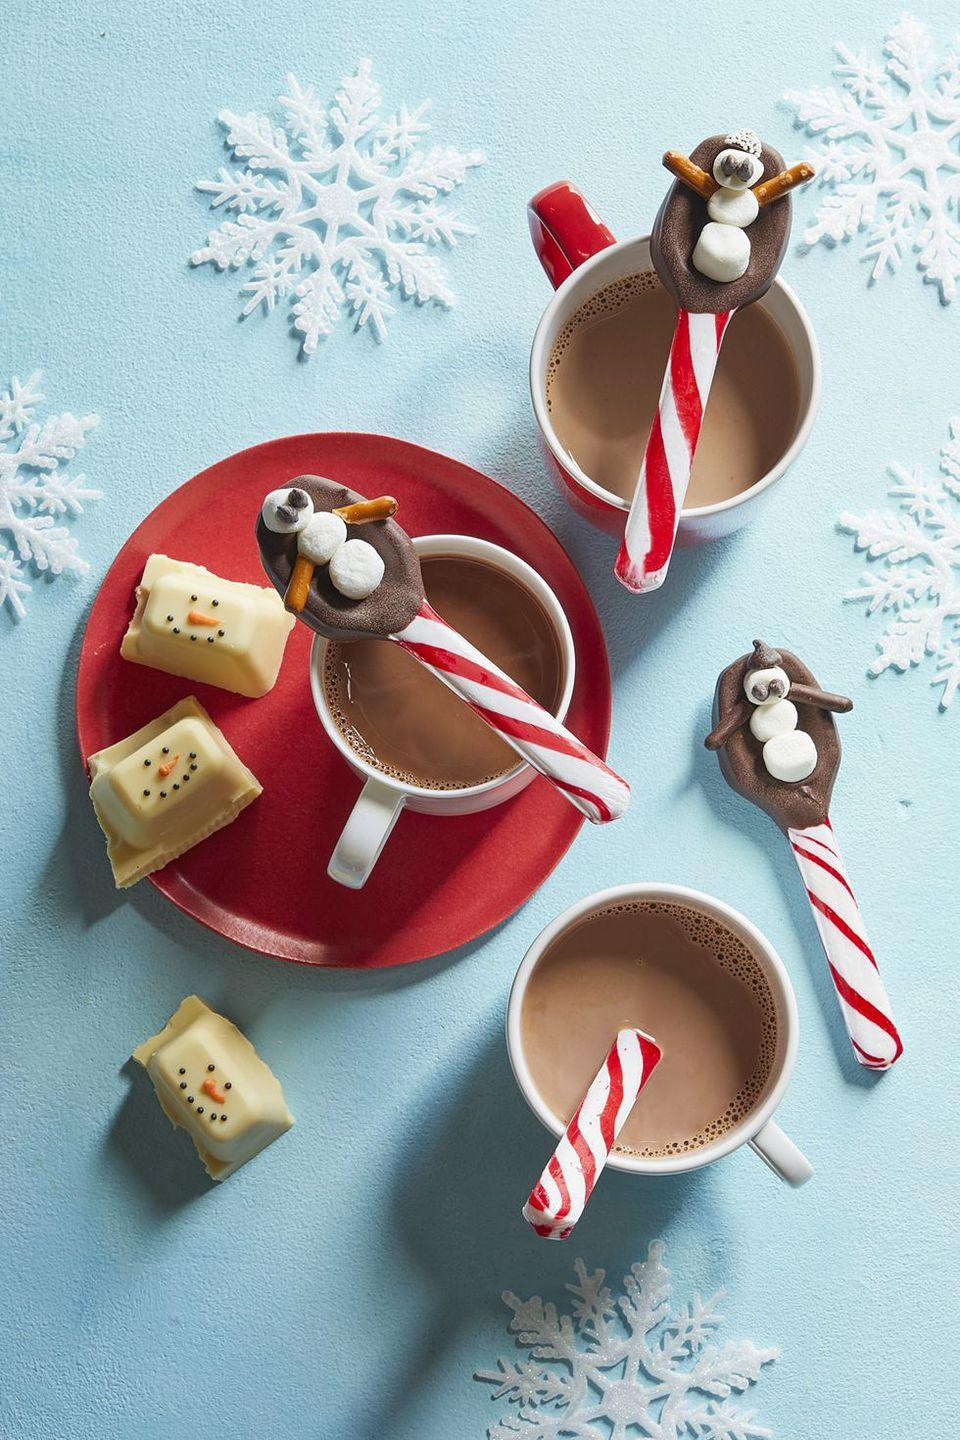 """<p>These festive candy cane spoons make the perfect gift for the<a href=""""https://www.redbookmag.com/food-recipes/recipes/g3926/14-things-to-do-with-hot-chocolate-besides-drink-it/"""" rel=""""nofollow noopener"""" target=""""_blank"""" data-ylk=""""slk:hot chocolate"""" class=""""link rapid-noclick-resp""""> hot chocolate</a> lover in your life. </p><p><strong><a href=""""https://www.womansday.com/food-recipes/food-drinks/recipes/a60669/snowman-spoons-recipe/"""" rel=""""nofollow noopener"""" target=""""_blank"""" data-ylk=""""slk:Get the recipe."""" class=""""link rapid-noclick-resp"""">Get the recipe. </a></strong></p>"""